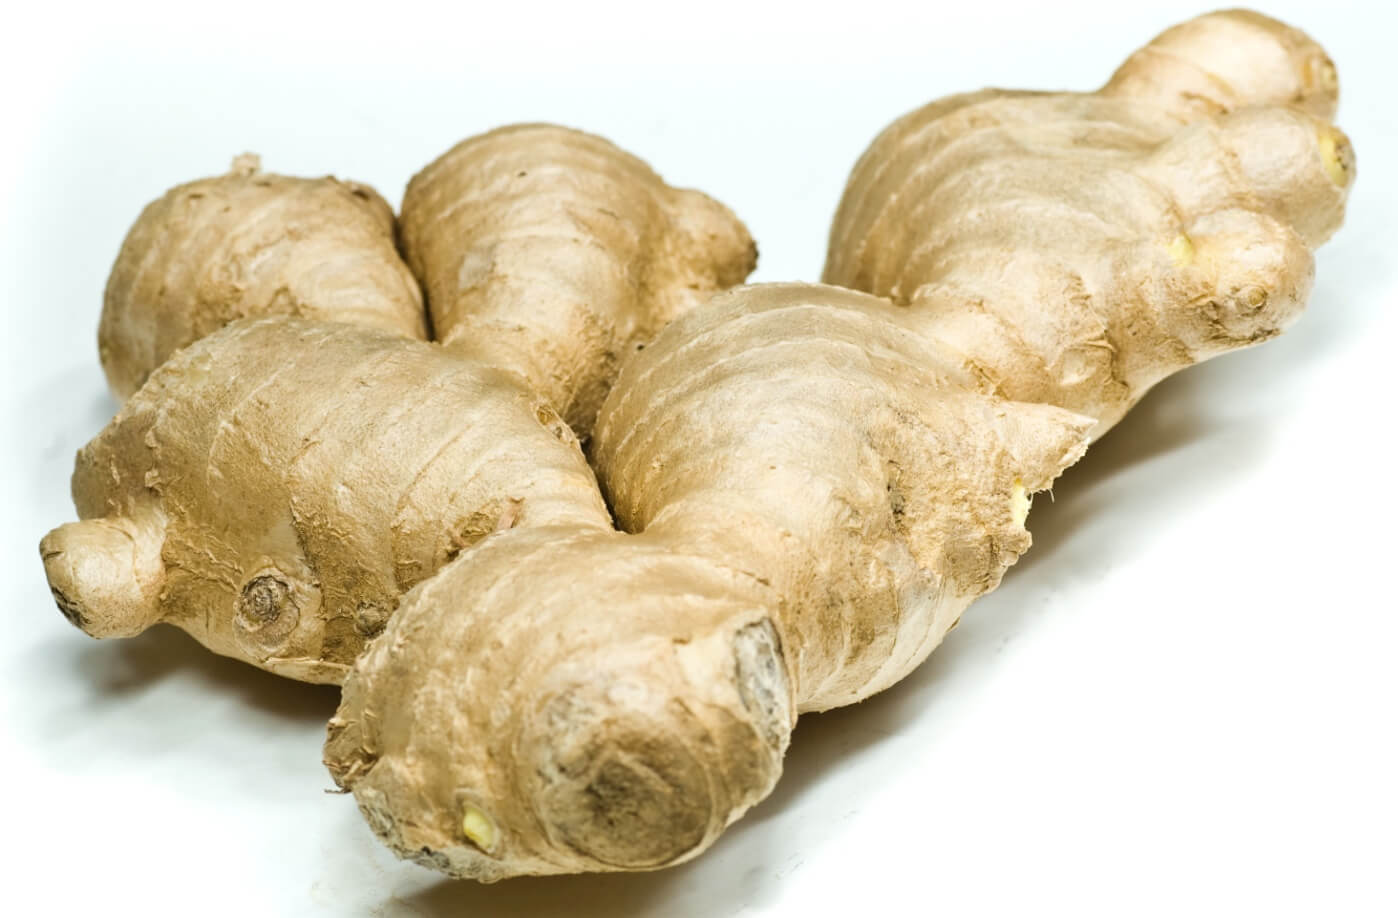 Ginger Root - 0.5 lb